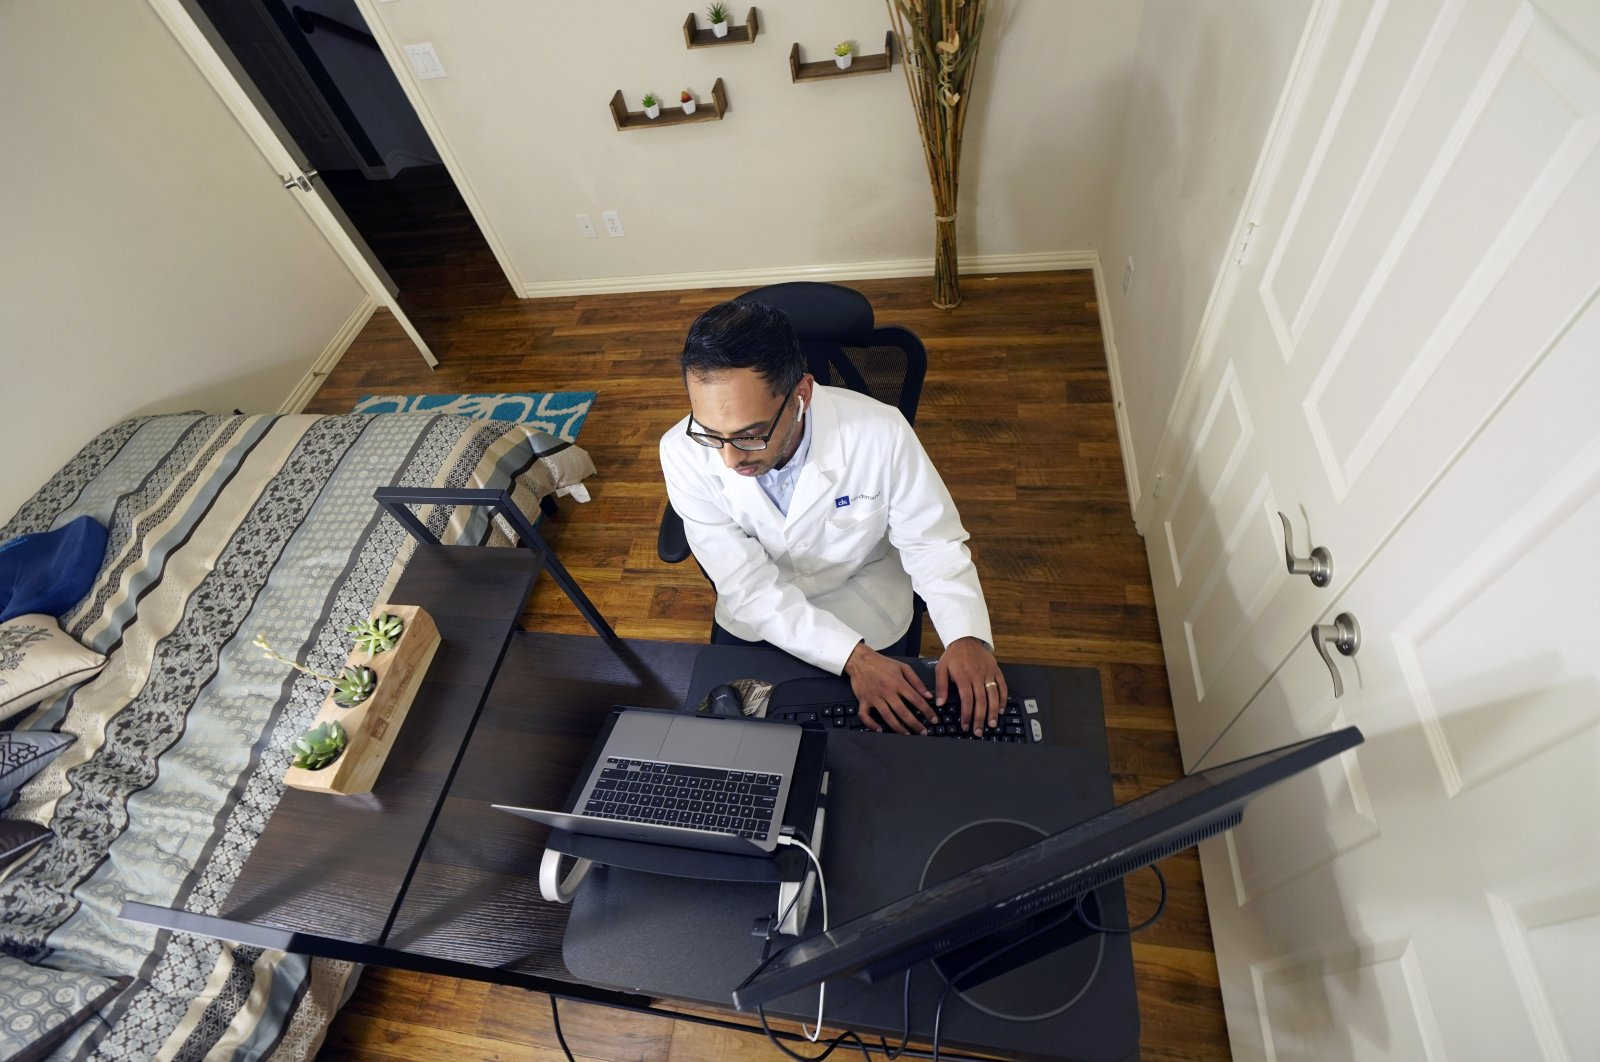 The medical director of Doctor on Demand, Dr. Vibin Roy, types notes as he listens to a patient during an online primary care visit from his home, Texas, the U.S., April 23, 2021. (AP Photo)